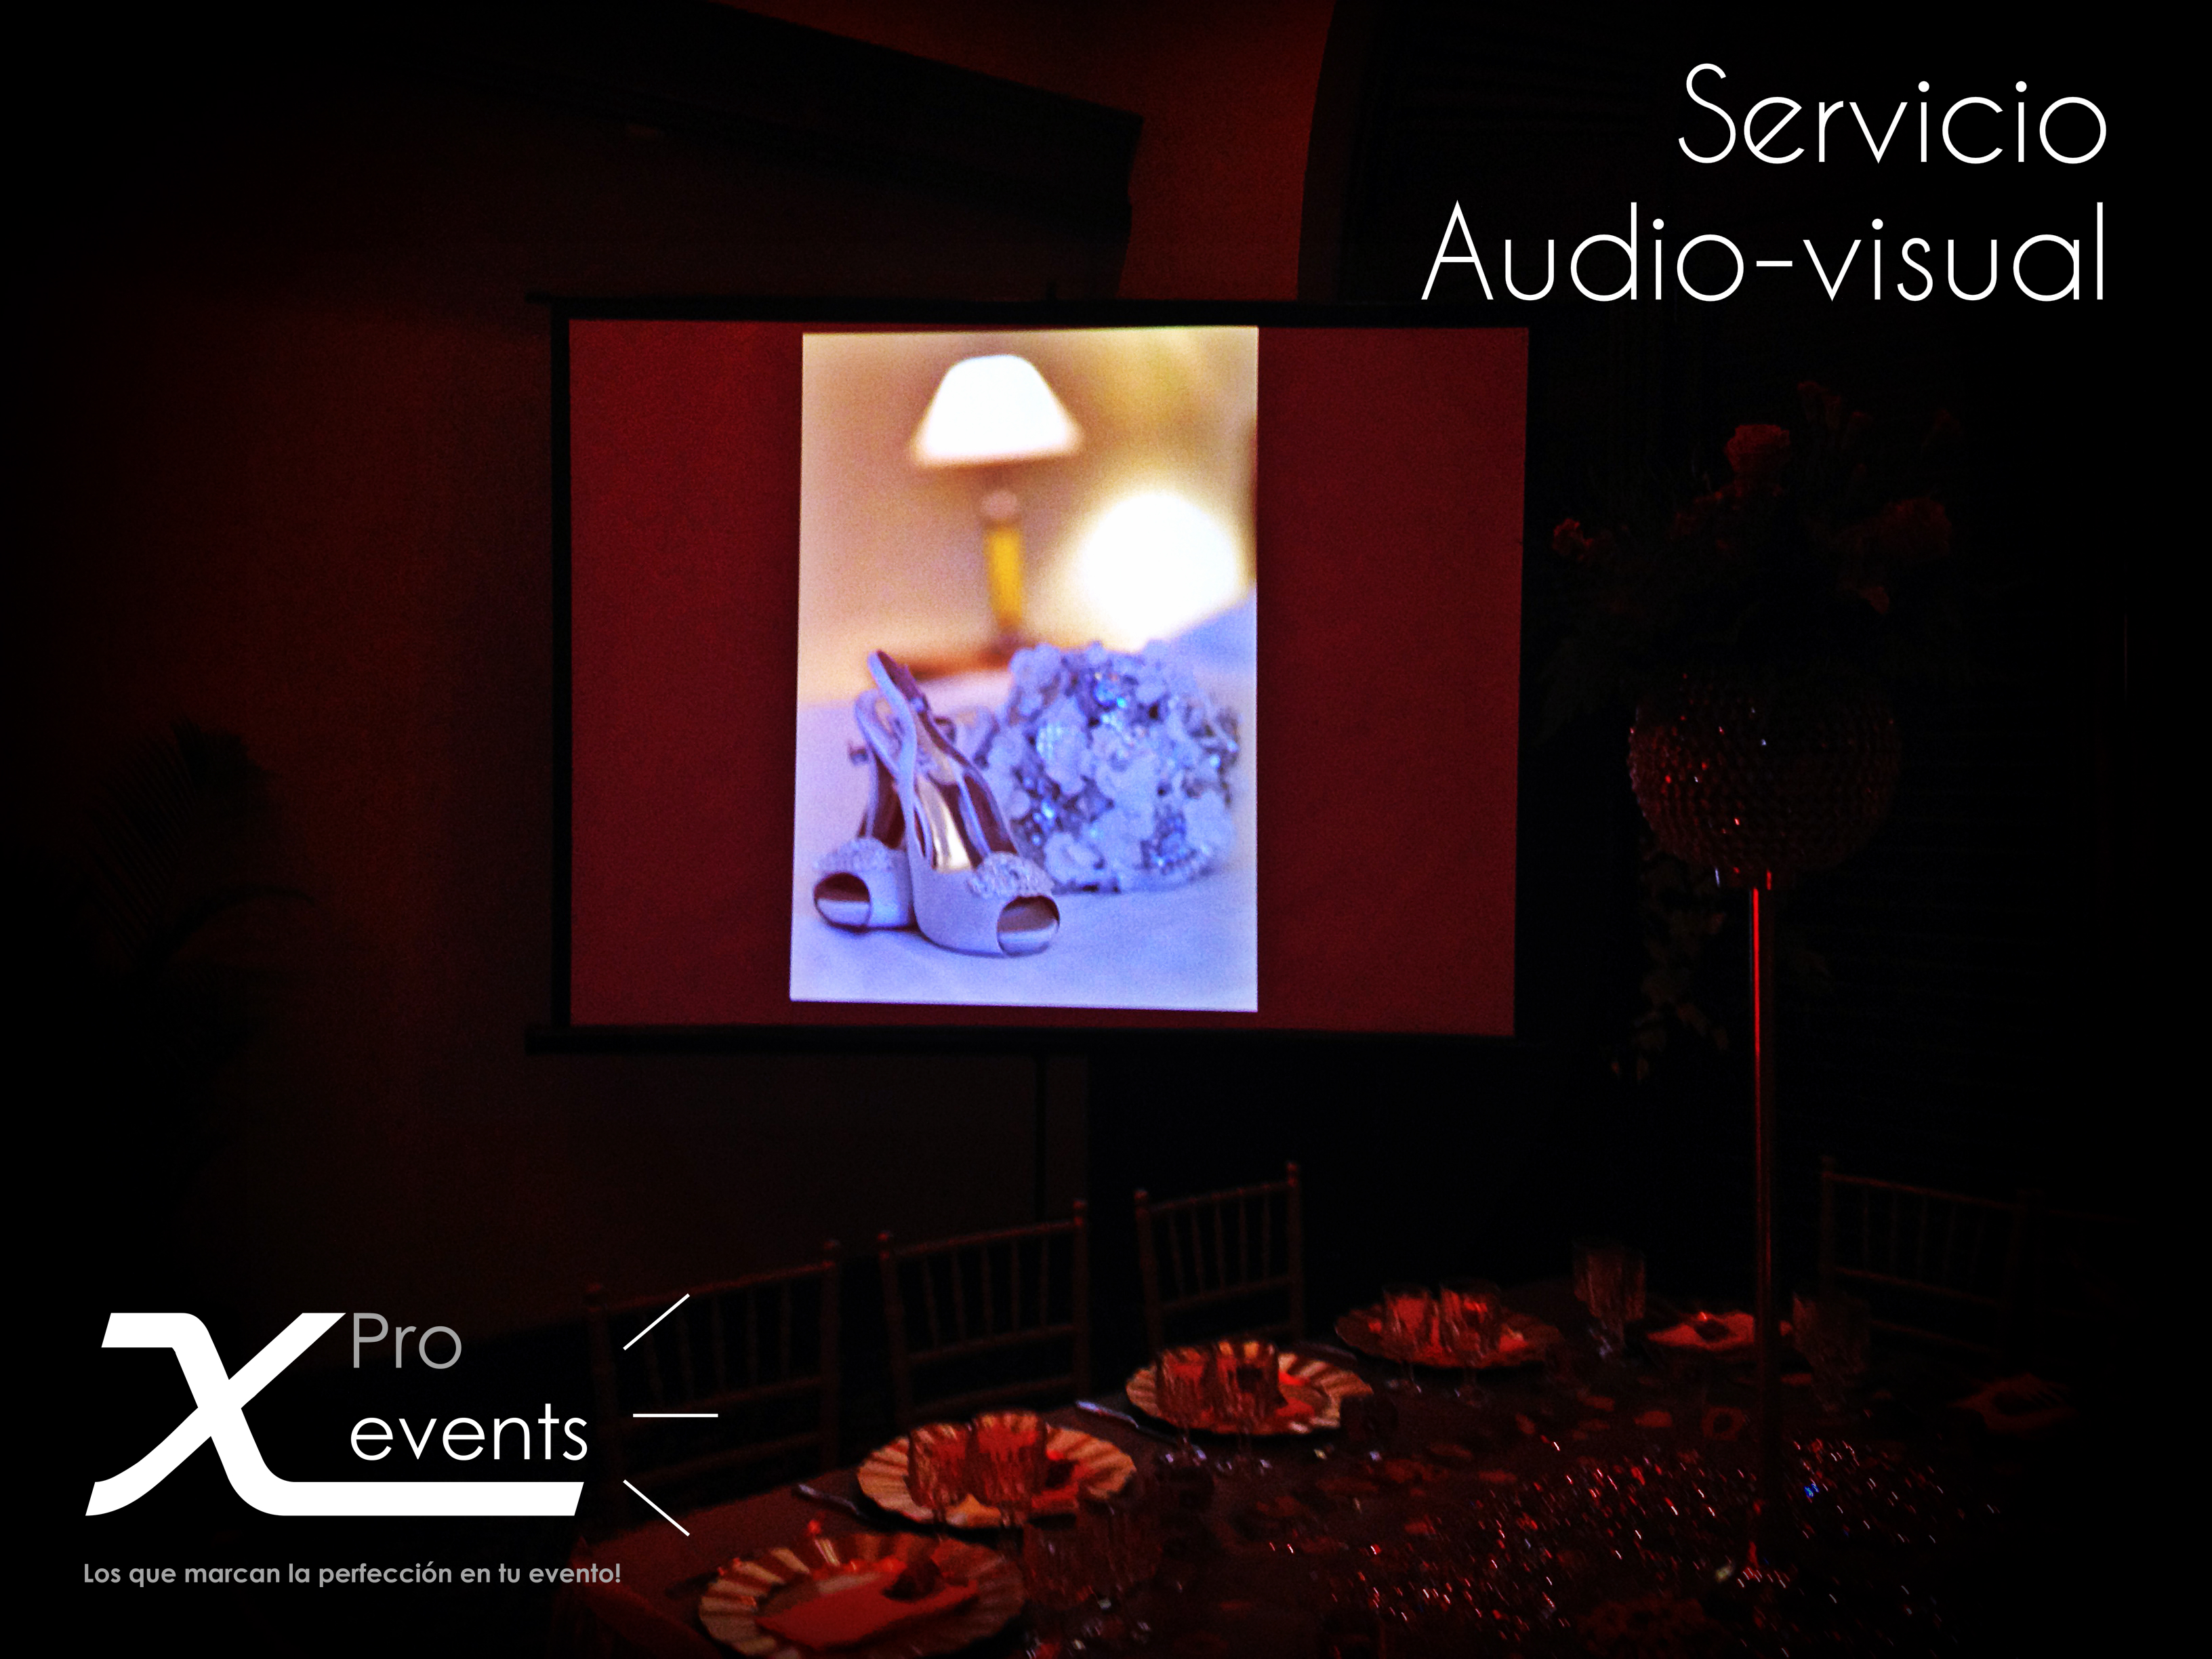 X Pro events  - 809-846-3784 - Sistema de proyeccion audiovisual - Hotel Santo D